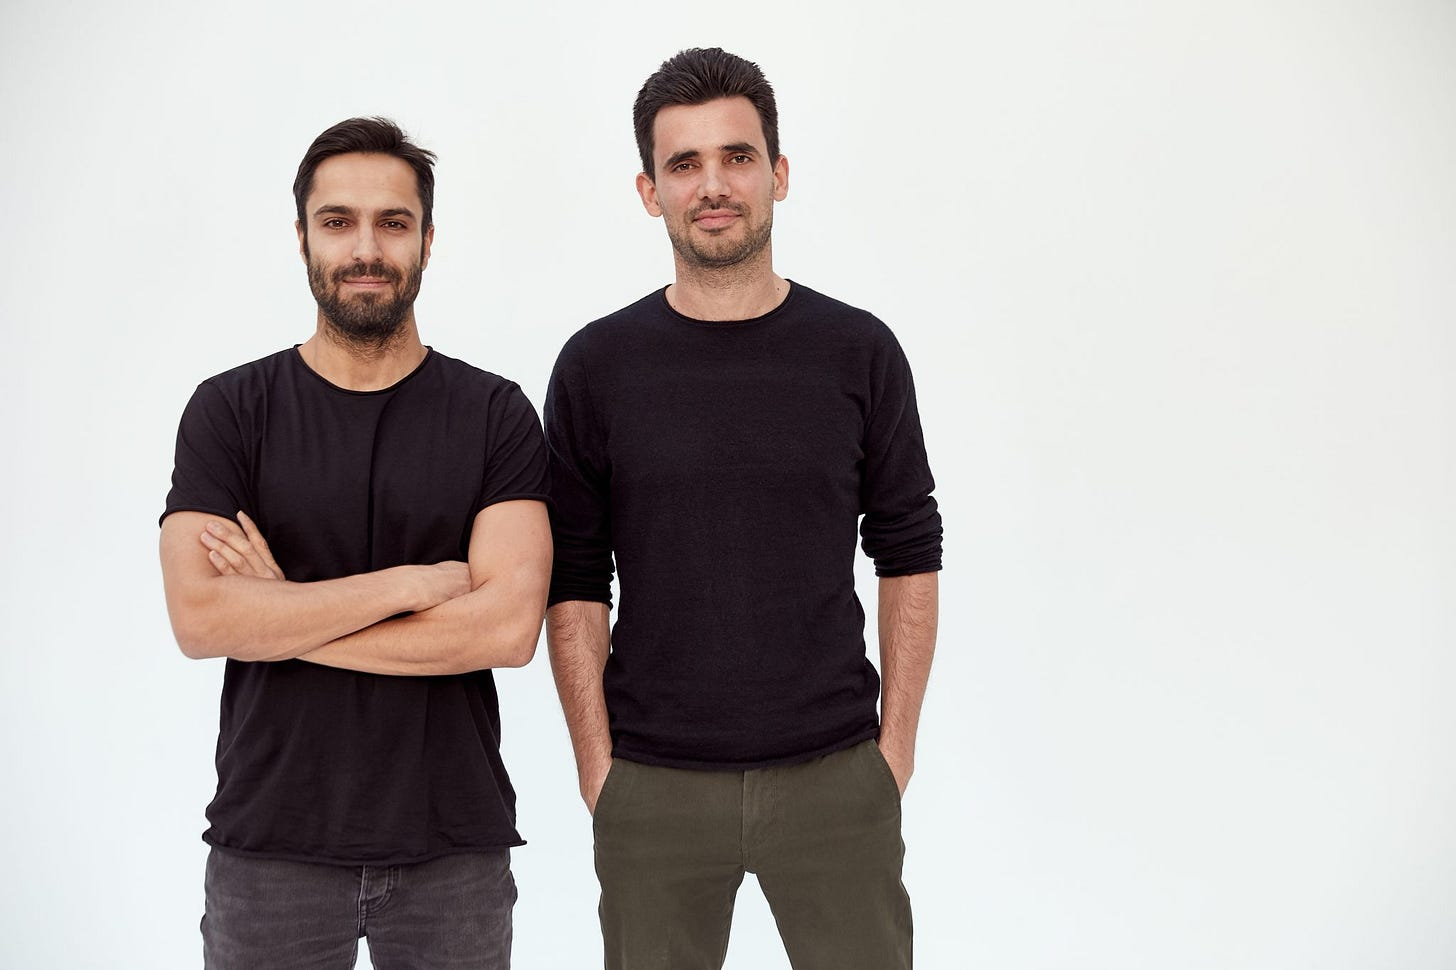 https://content.sifted.eu/wp-content/uploads/2020/08/17170811/Voodoo-founders-Alexandre-Yazdi-and-Laurent-Ritter-scaled.jpg